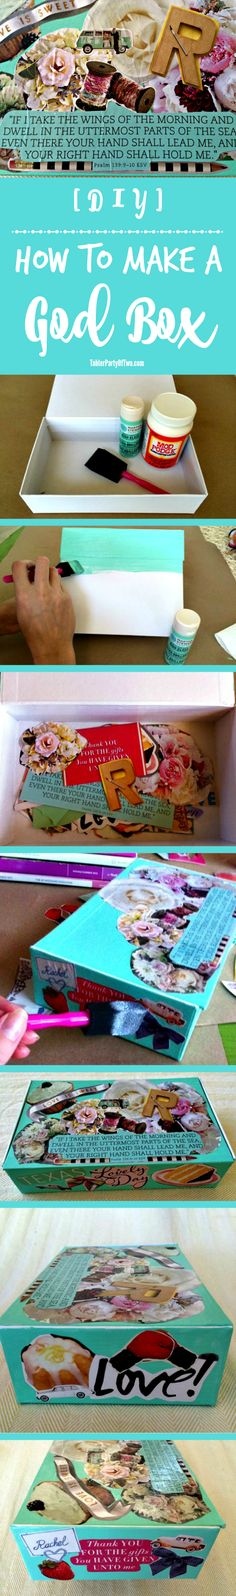 How to Make a God Box. it's a prayer box and it's the perfect way to record your prayers and thoughts, as well as God's answer to those prayers! (Diy Box How To Make) Prayer Box, God Prayer, Church Games, Church Crafts, Prayer Warrior, Bible Crafts, Diy Box, Bible Lessons, Christian Gifts